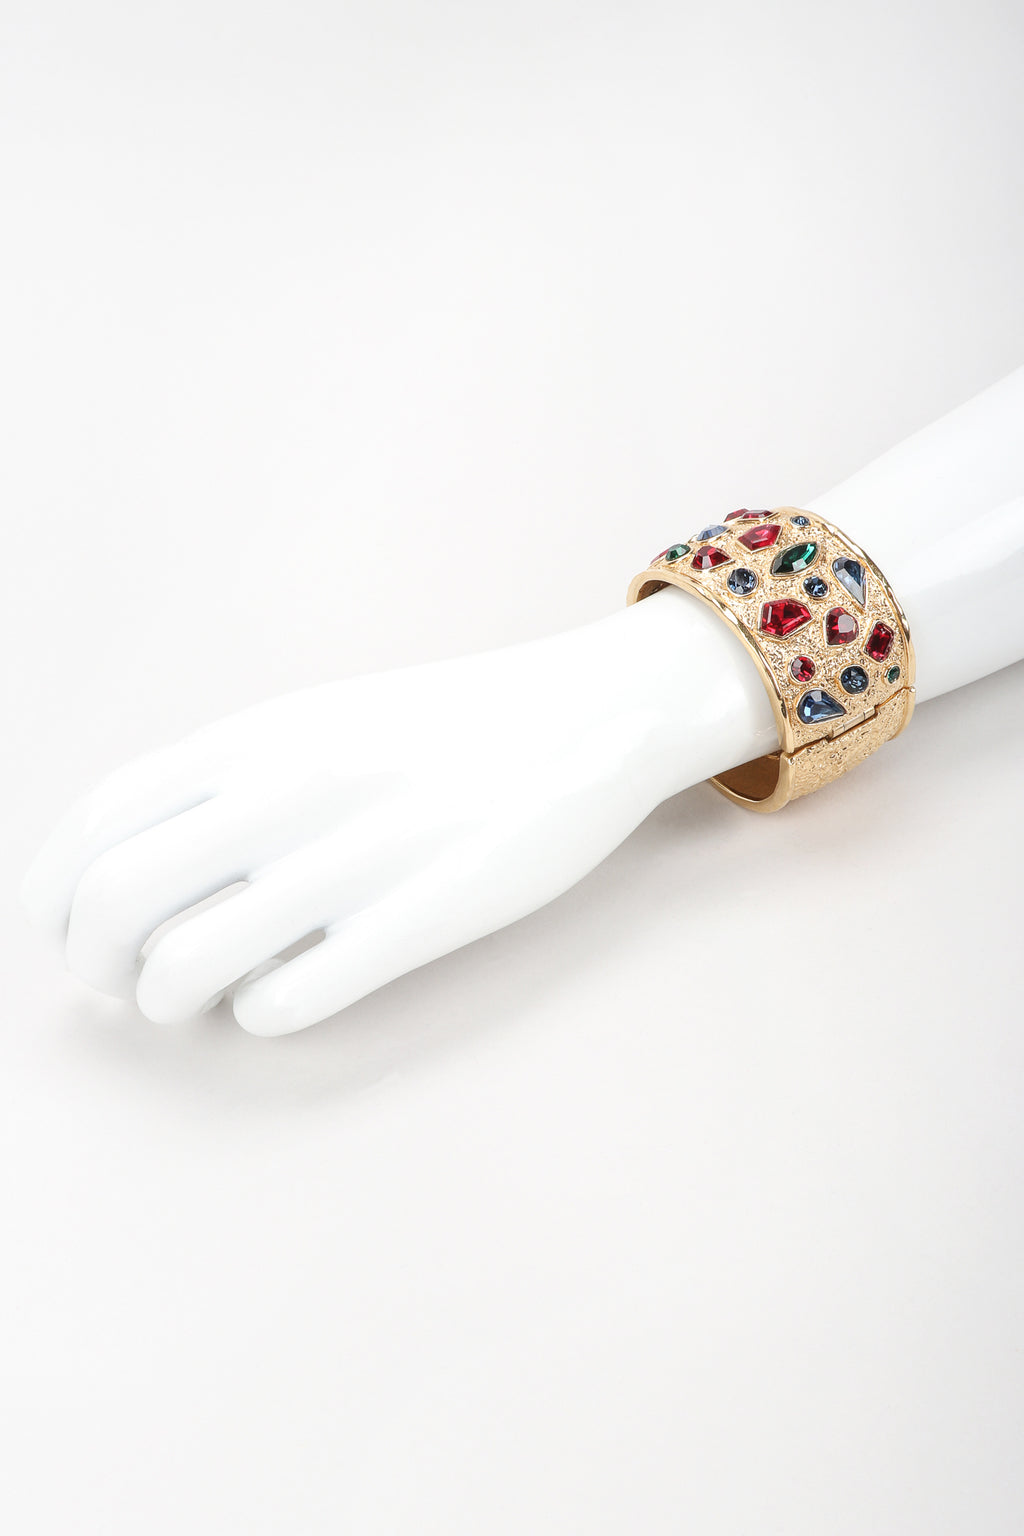 Recess Vintage Guy Laroche Gold Hinged Cuff Bracelet With Faux Gemstones on Mannequin Arm